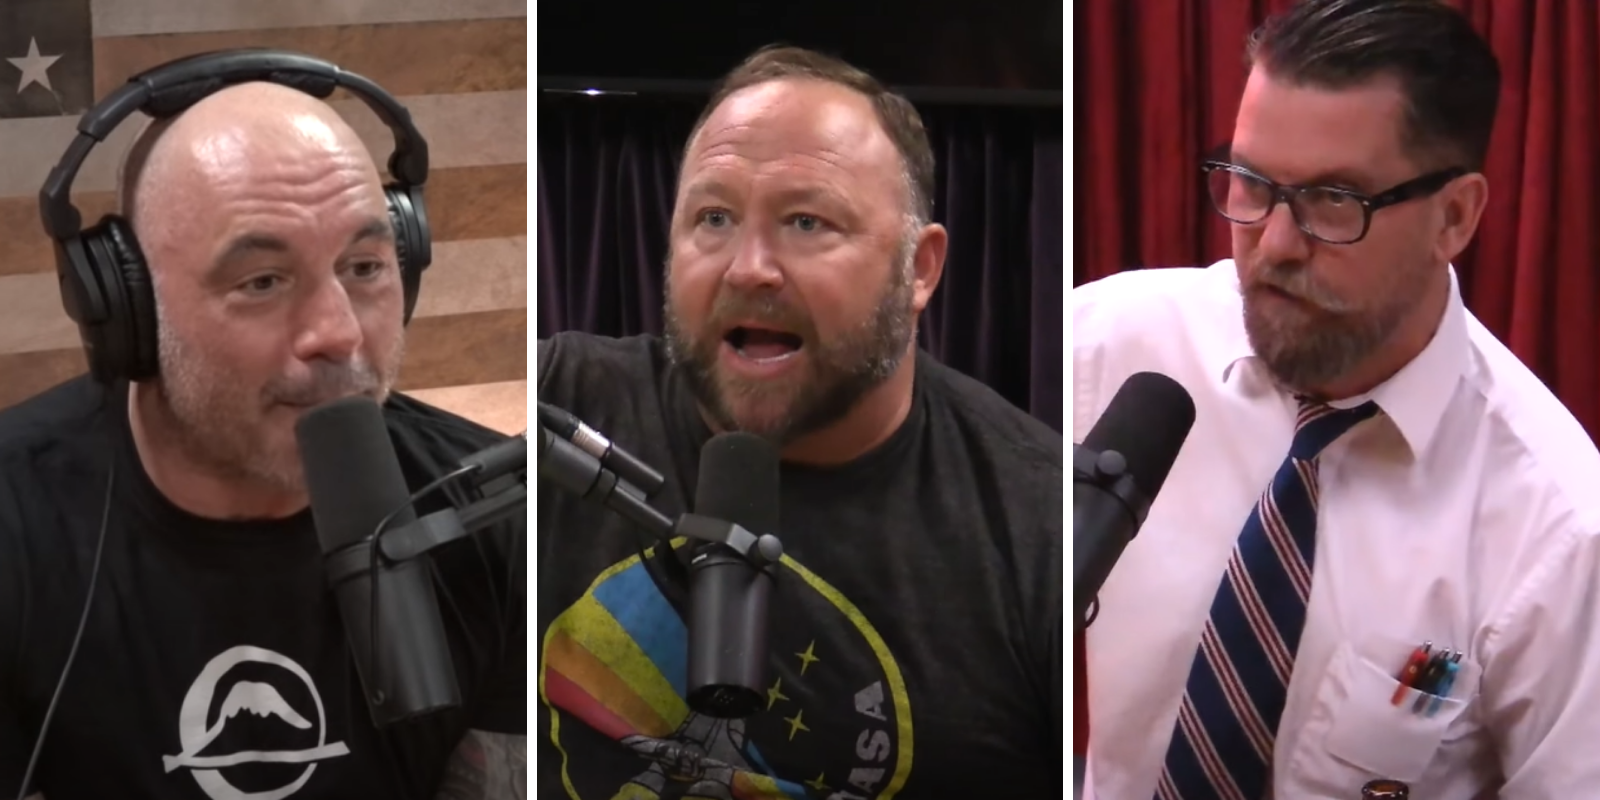 Joe Rogan Experience launches on Spotify, episodes featuring Alex Jones, Gavin McInnes, others removed